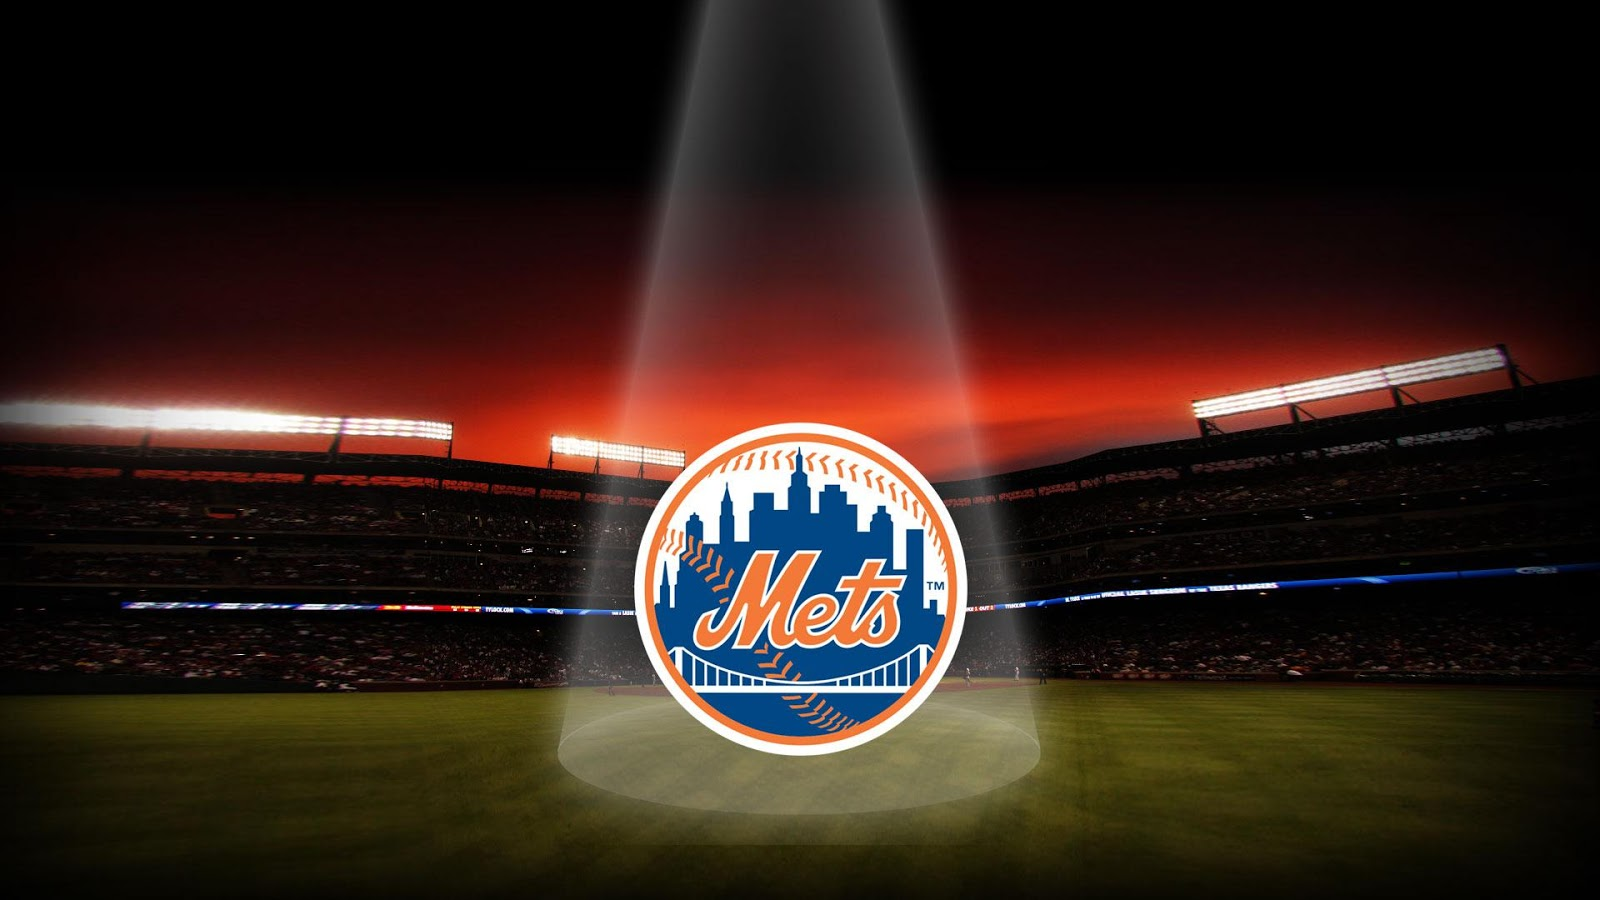 New York Mets Live Wallpaper 1600x900